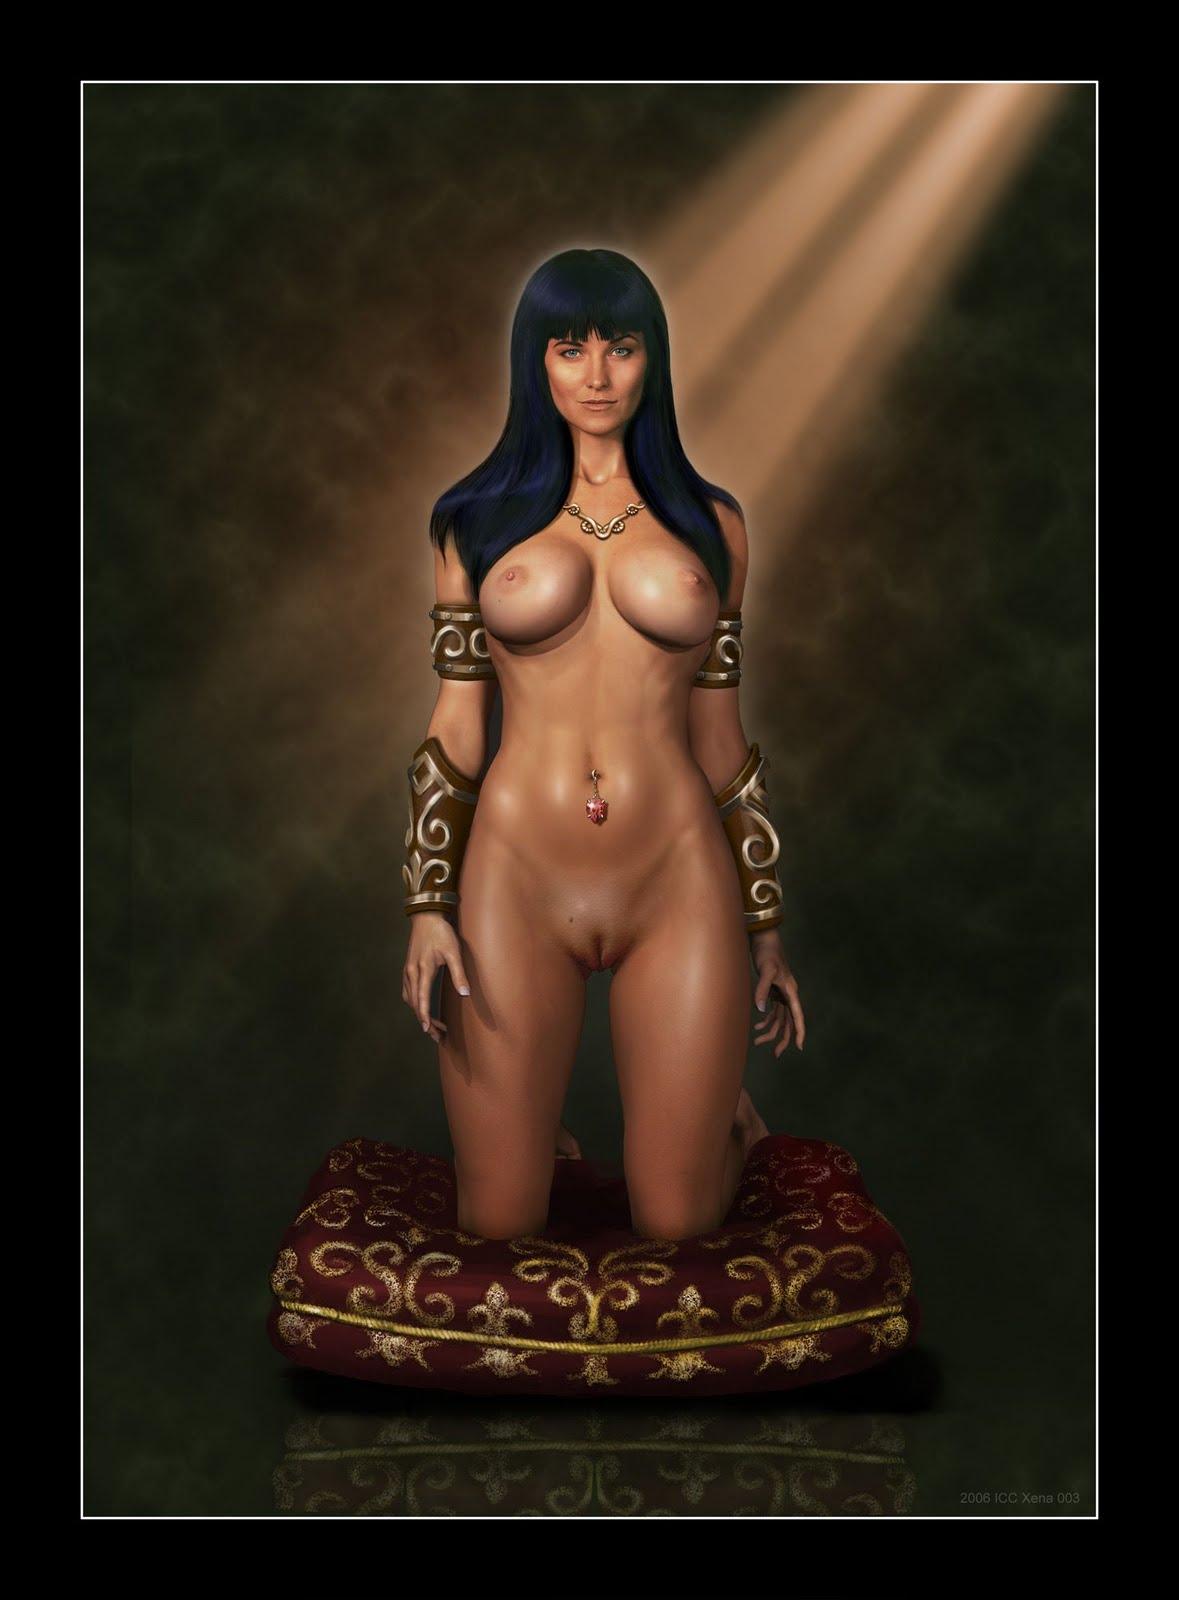 Free nud pic of xena warrior princess  nudes images